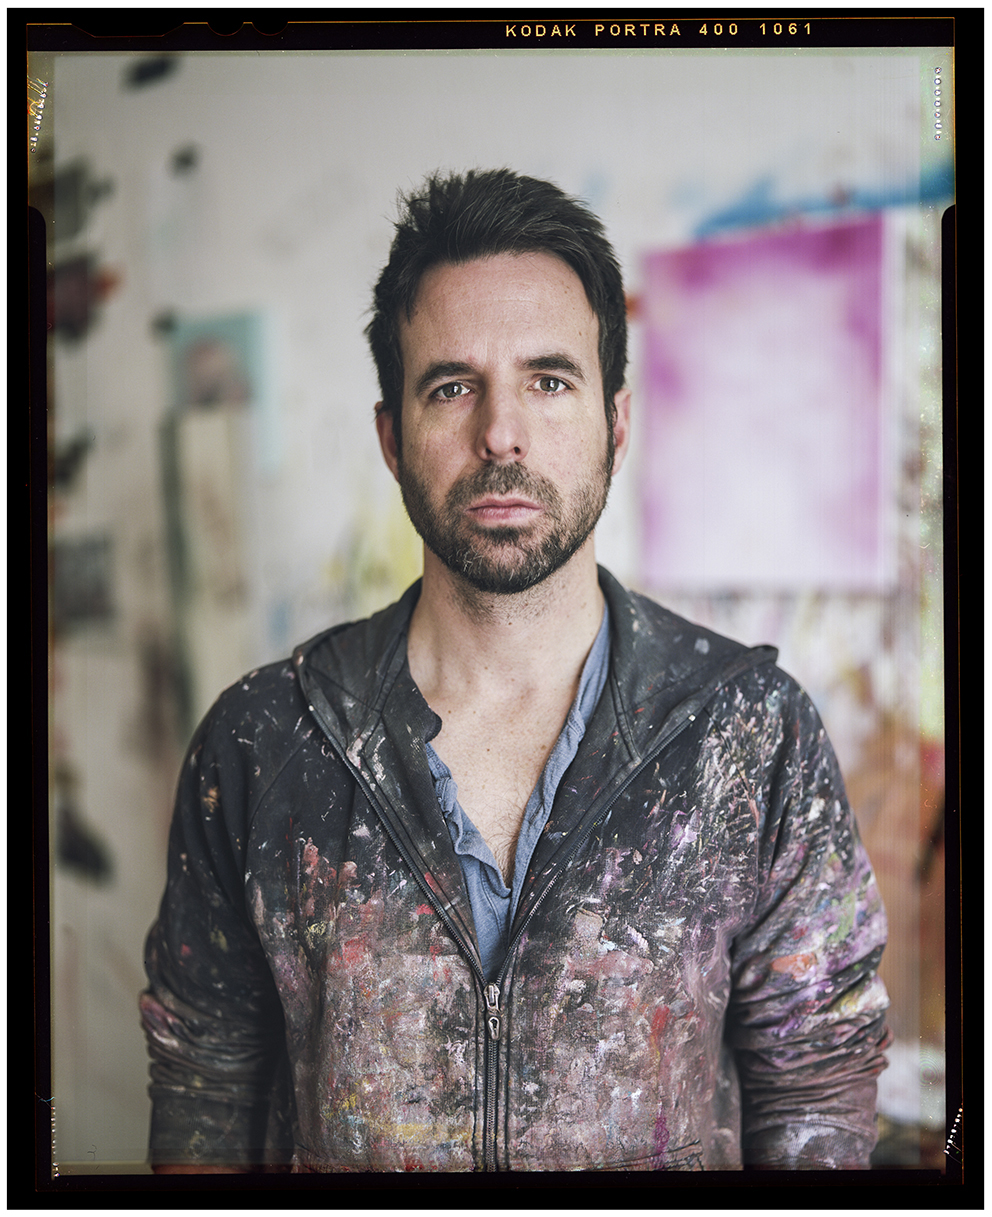 Contemporary artist and painter Antony Micallef